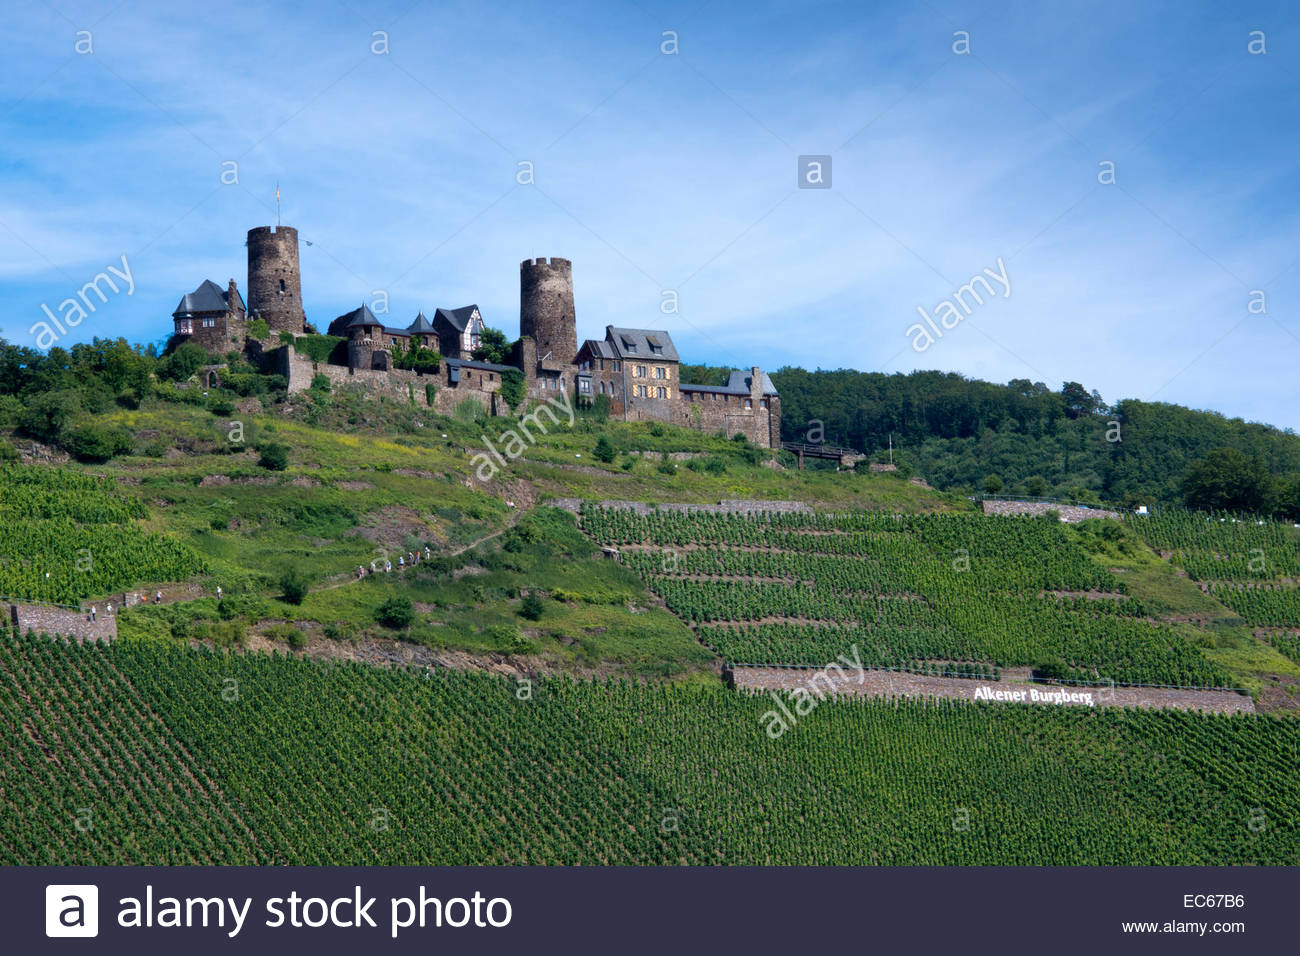 Burg Thurant The Rhineland, View of the Burg Thurant castle, near Alken, Moselle, district ...